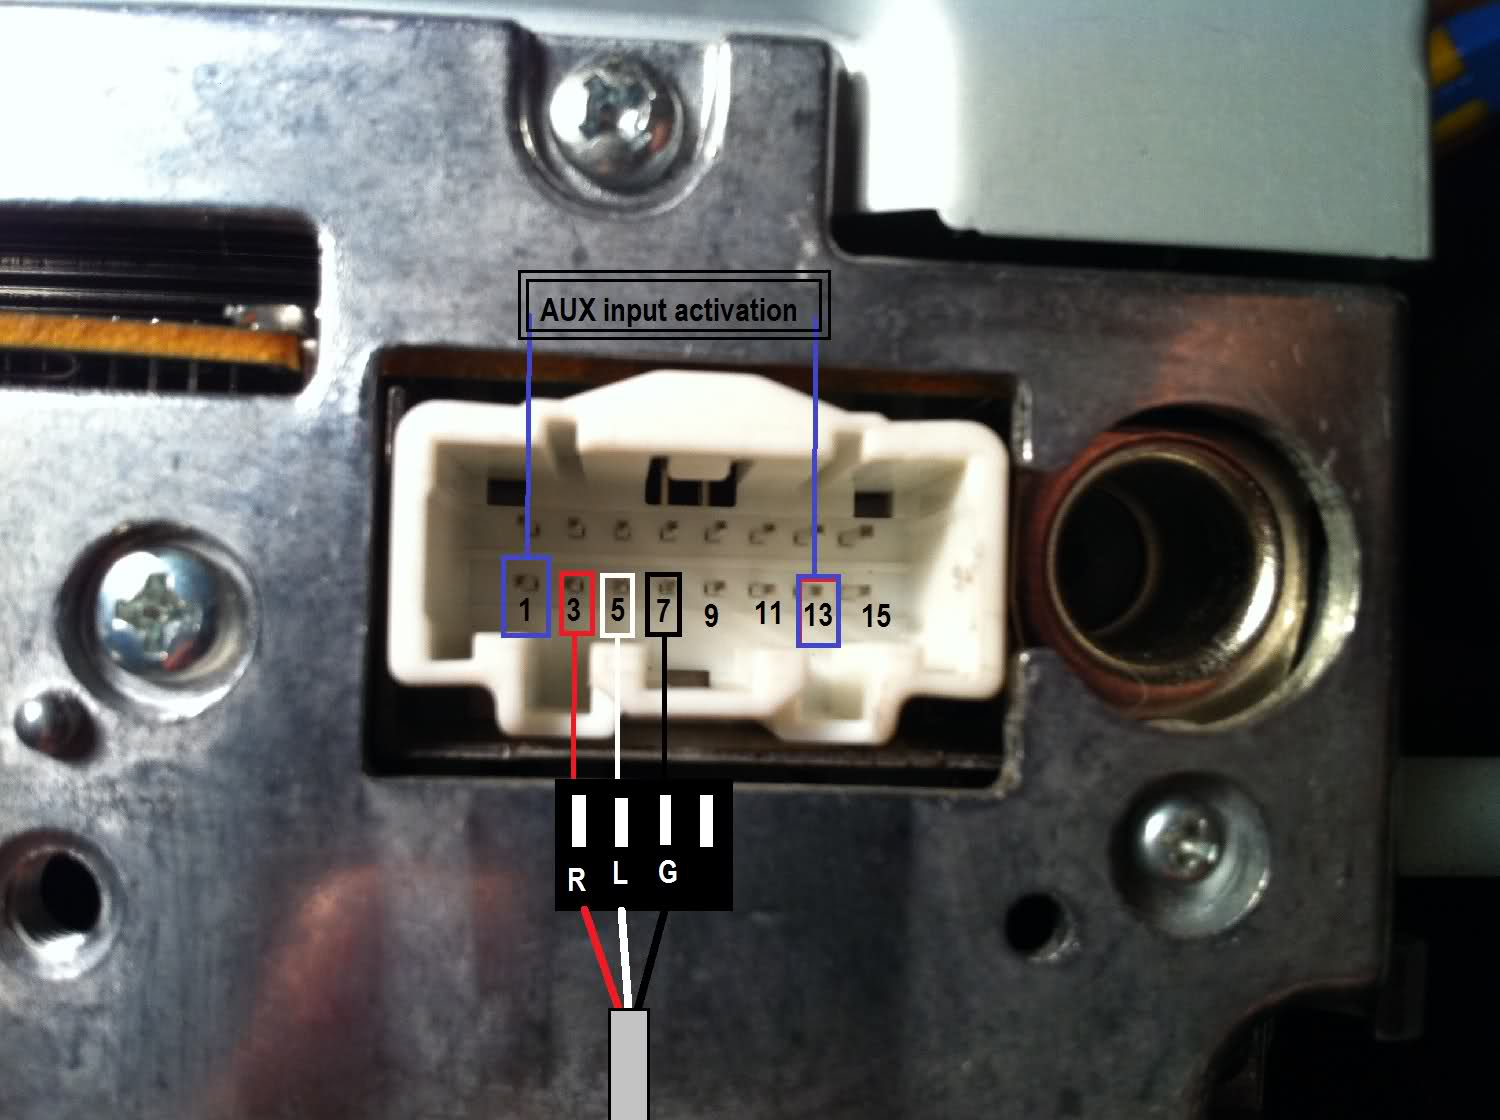 usb cord wire diagram wiring for contactor rx8 aux - rx8club.com